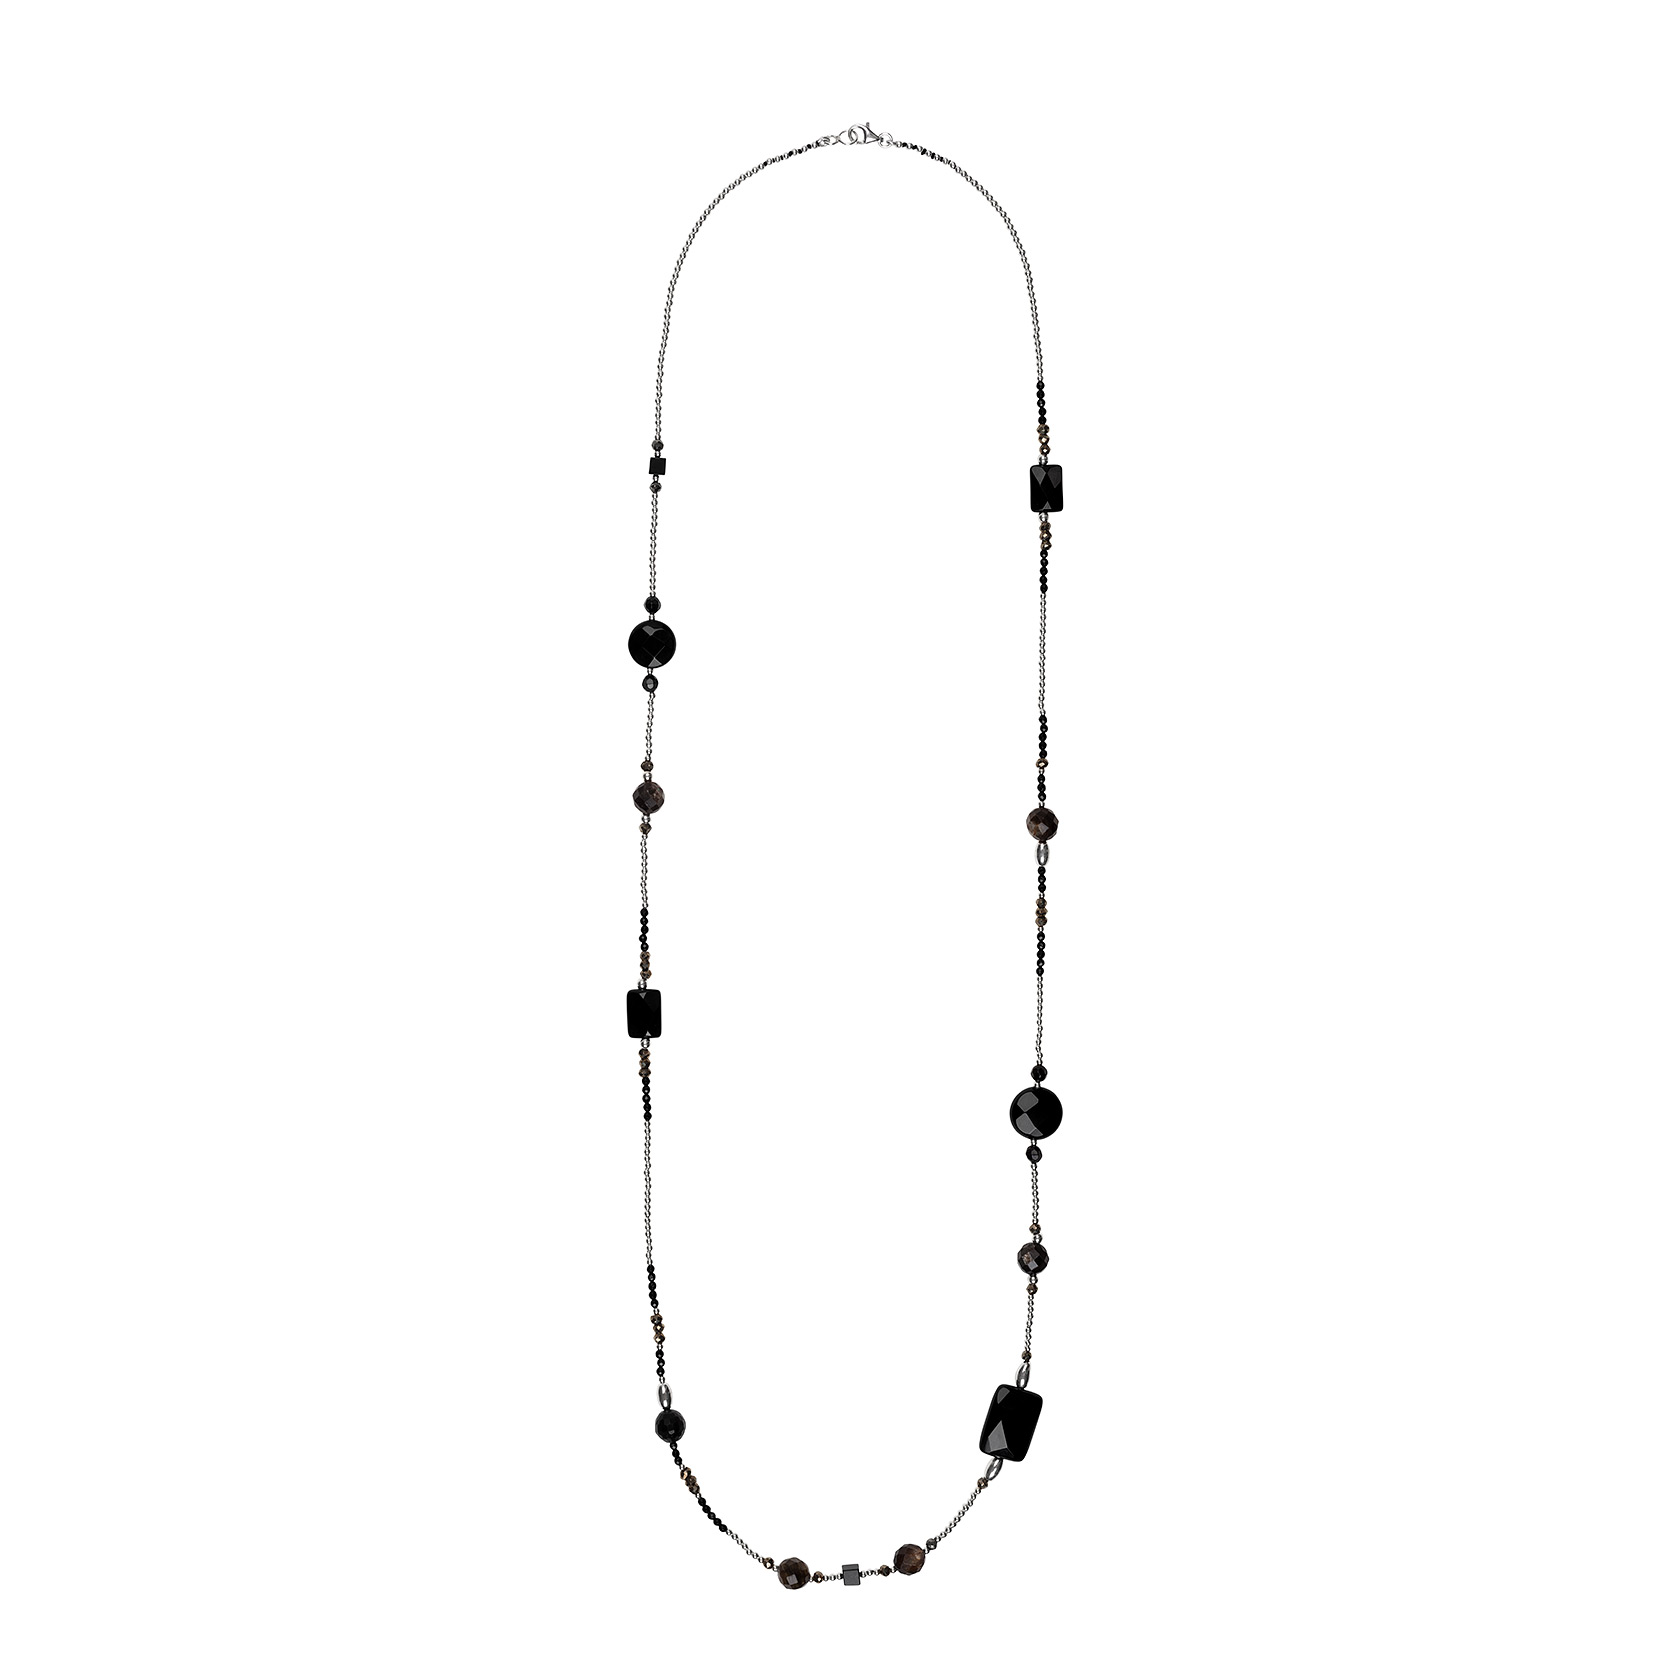 Muscovite and pyrite long necklace